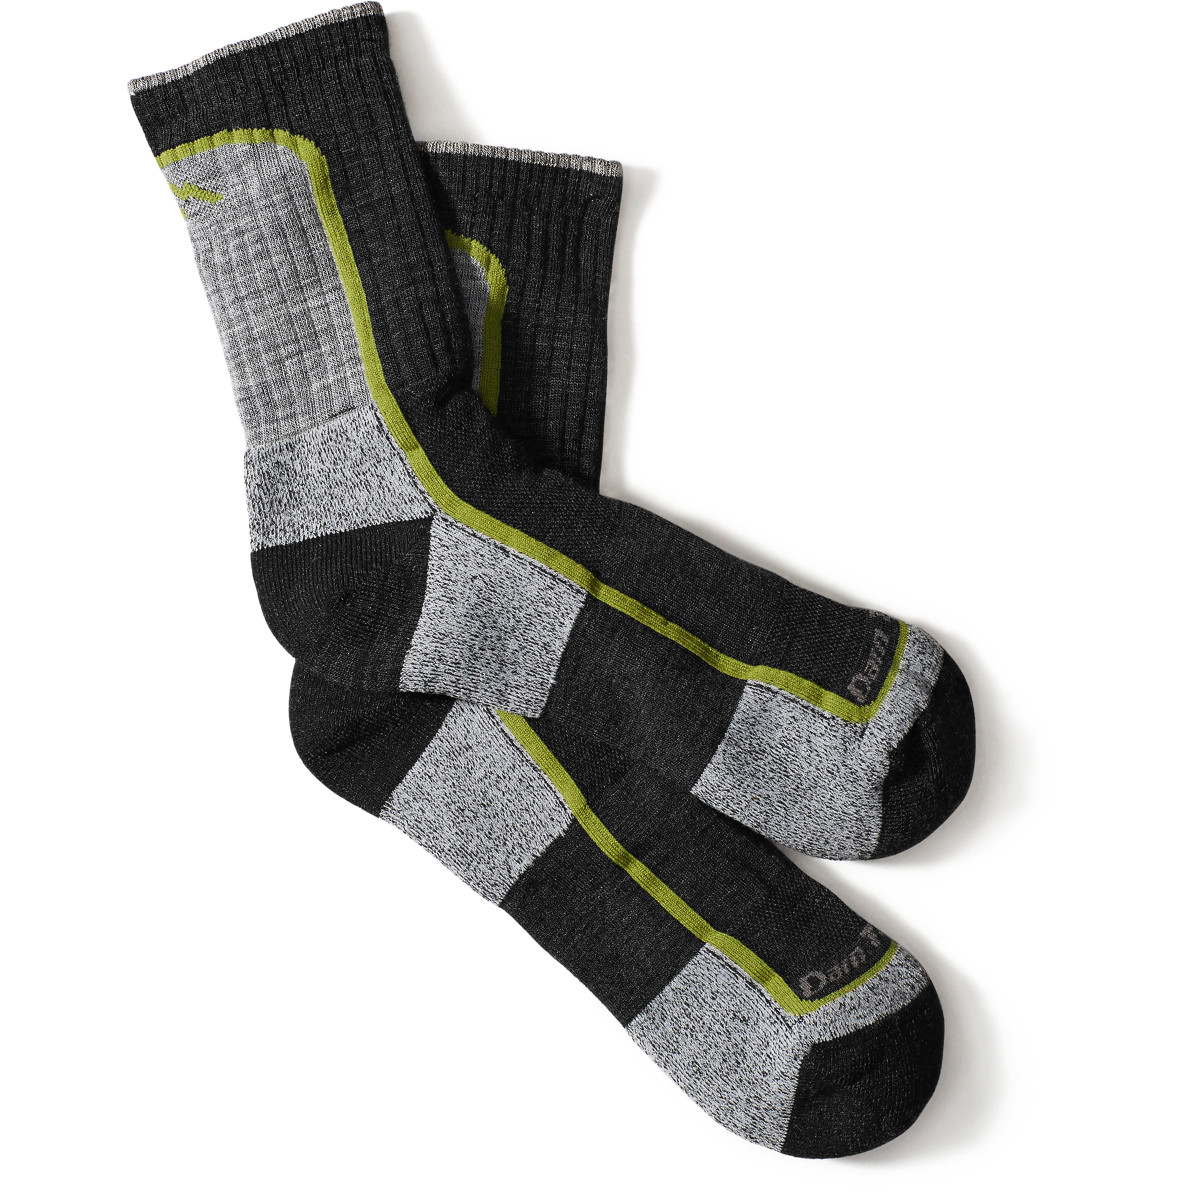 Darn Tough Socks Lt Hiker Micro Crew Lt Cushion - Charcoal